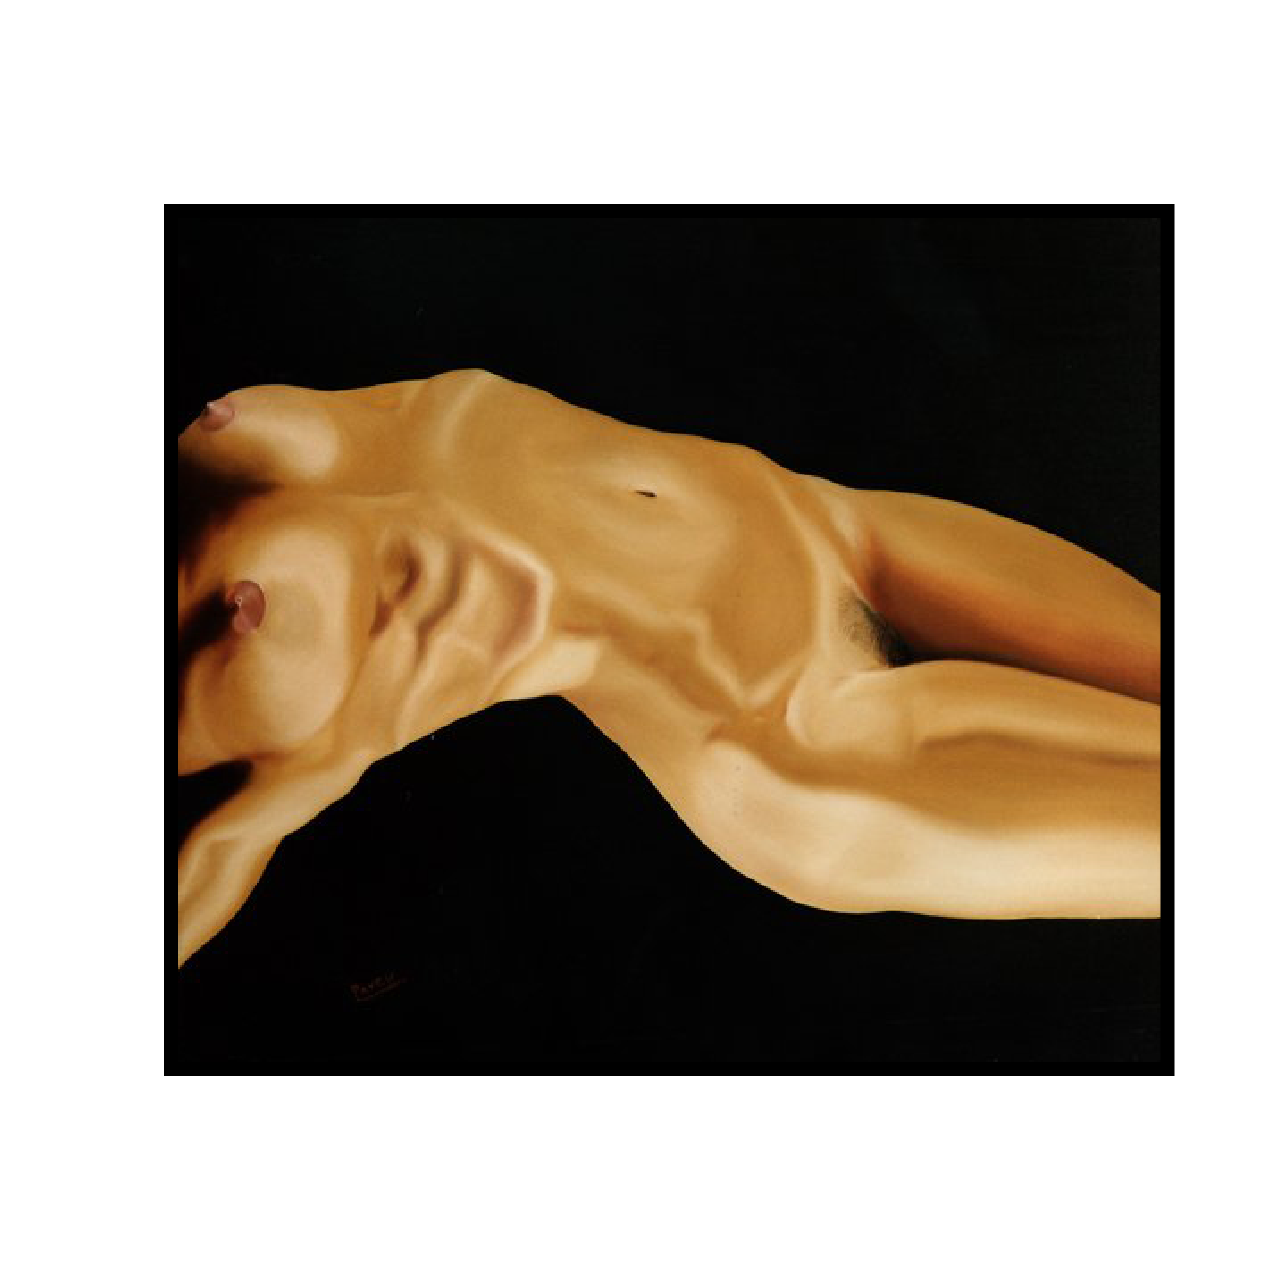 mario pavesi italian sculptur painter female body naked woman